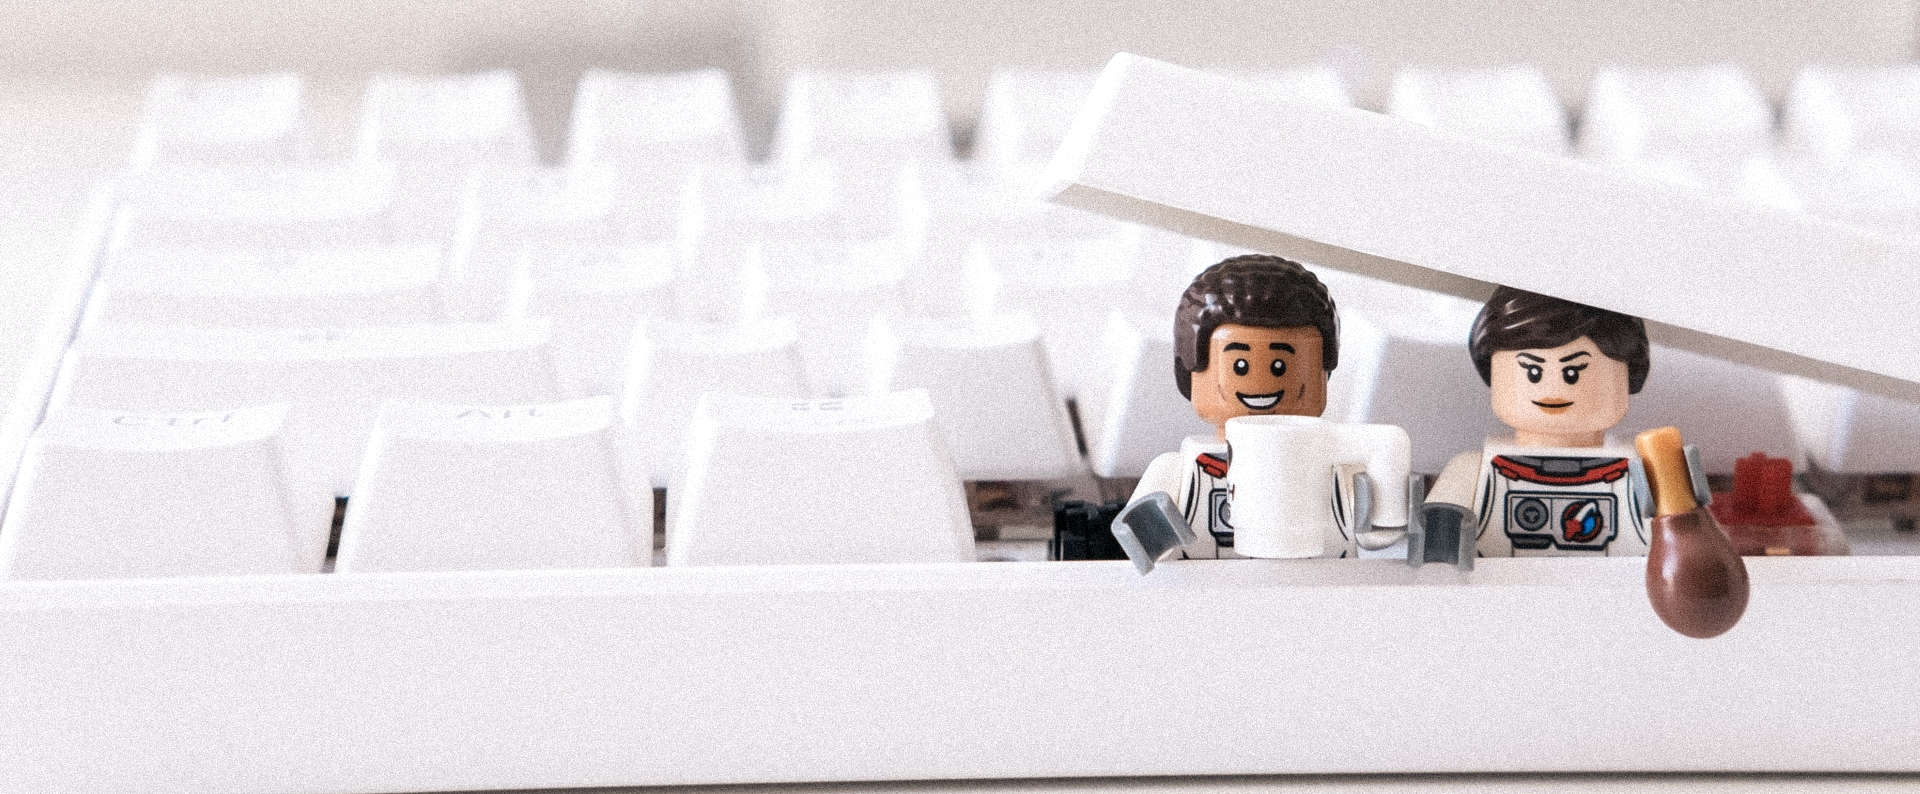 Lego, Team, unsplash.com, James Pond